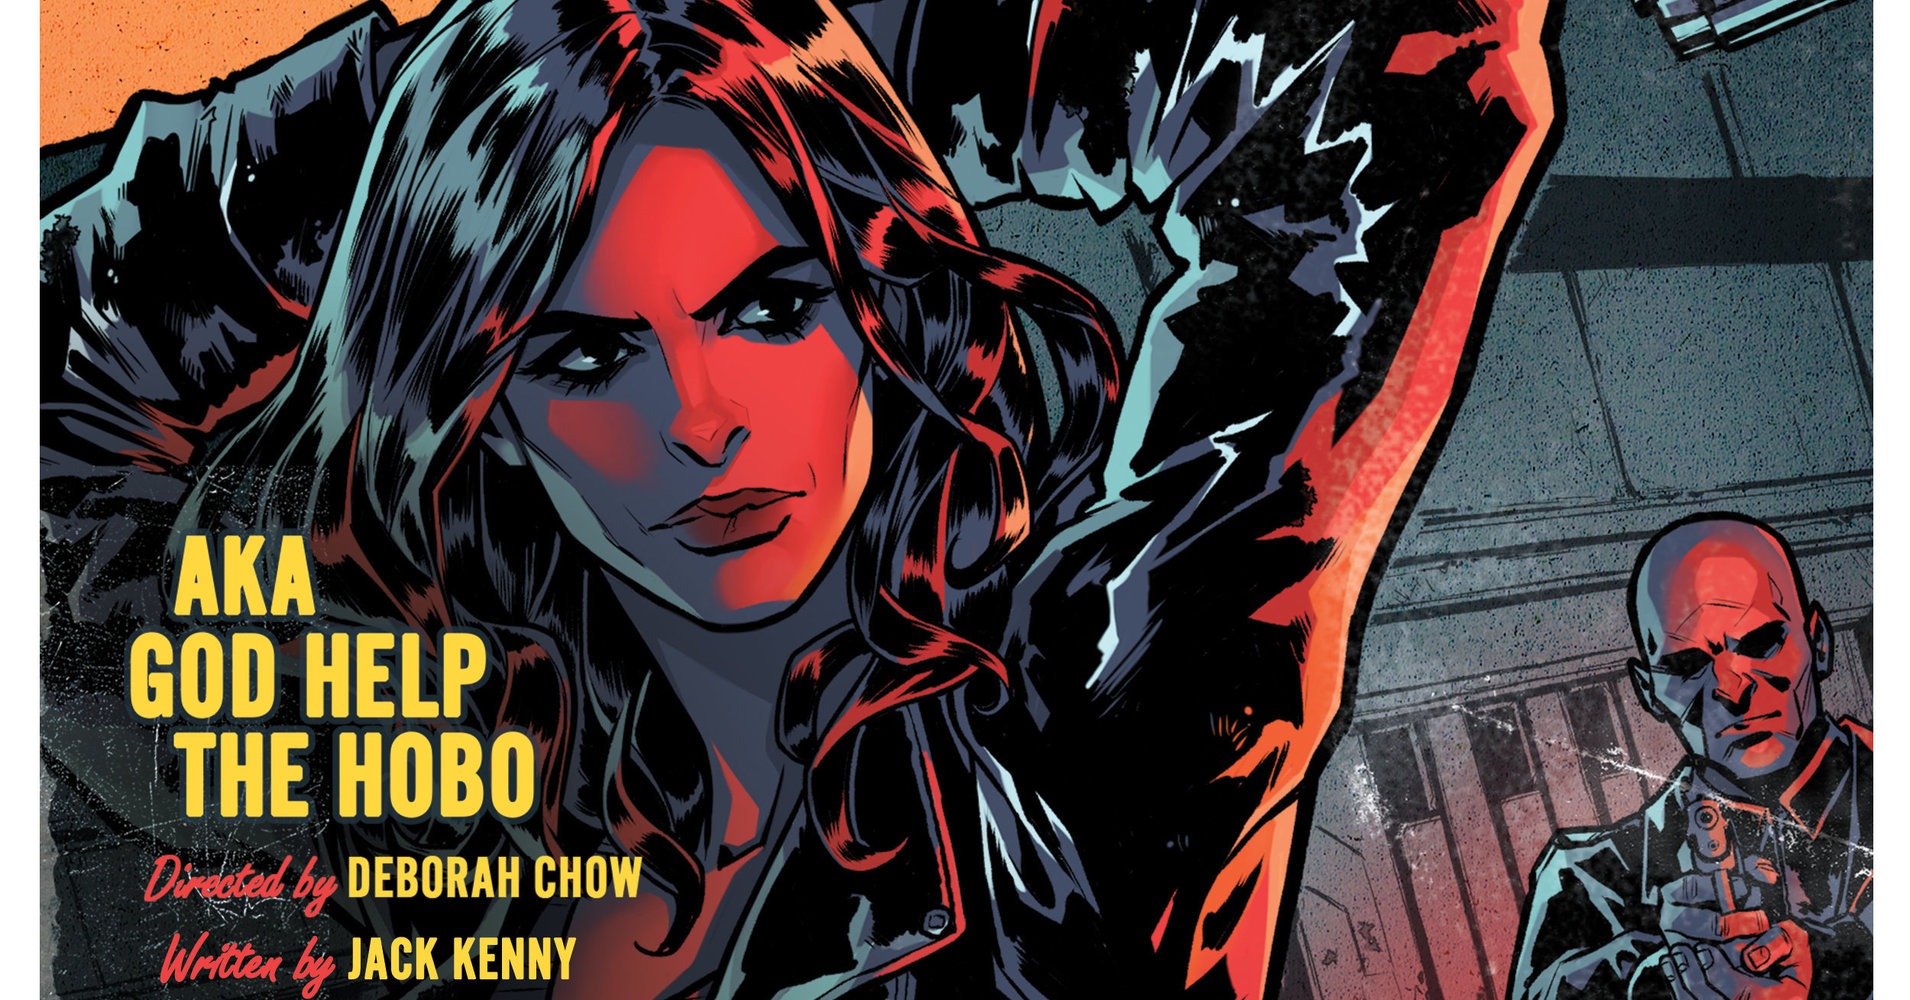 These 'Jessica Jones' Pulp-Style Covers Offer Spoiler Hints Galore